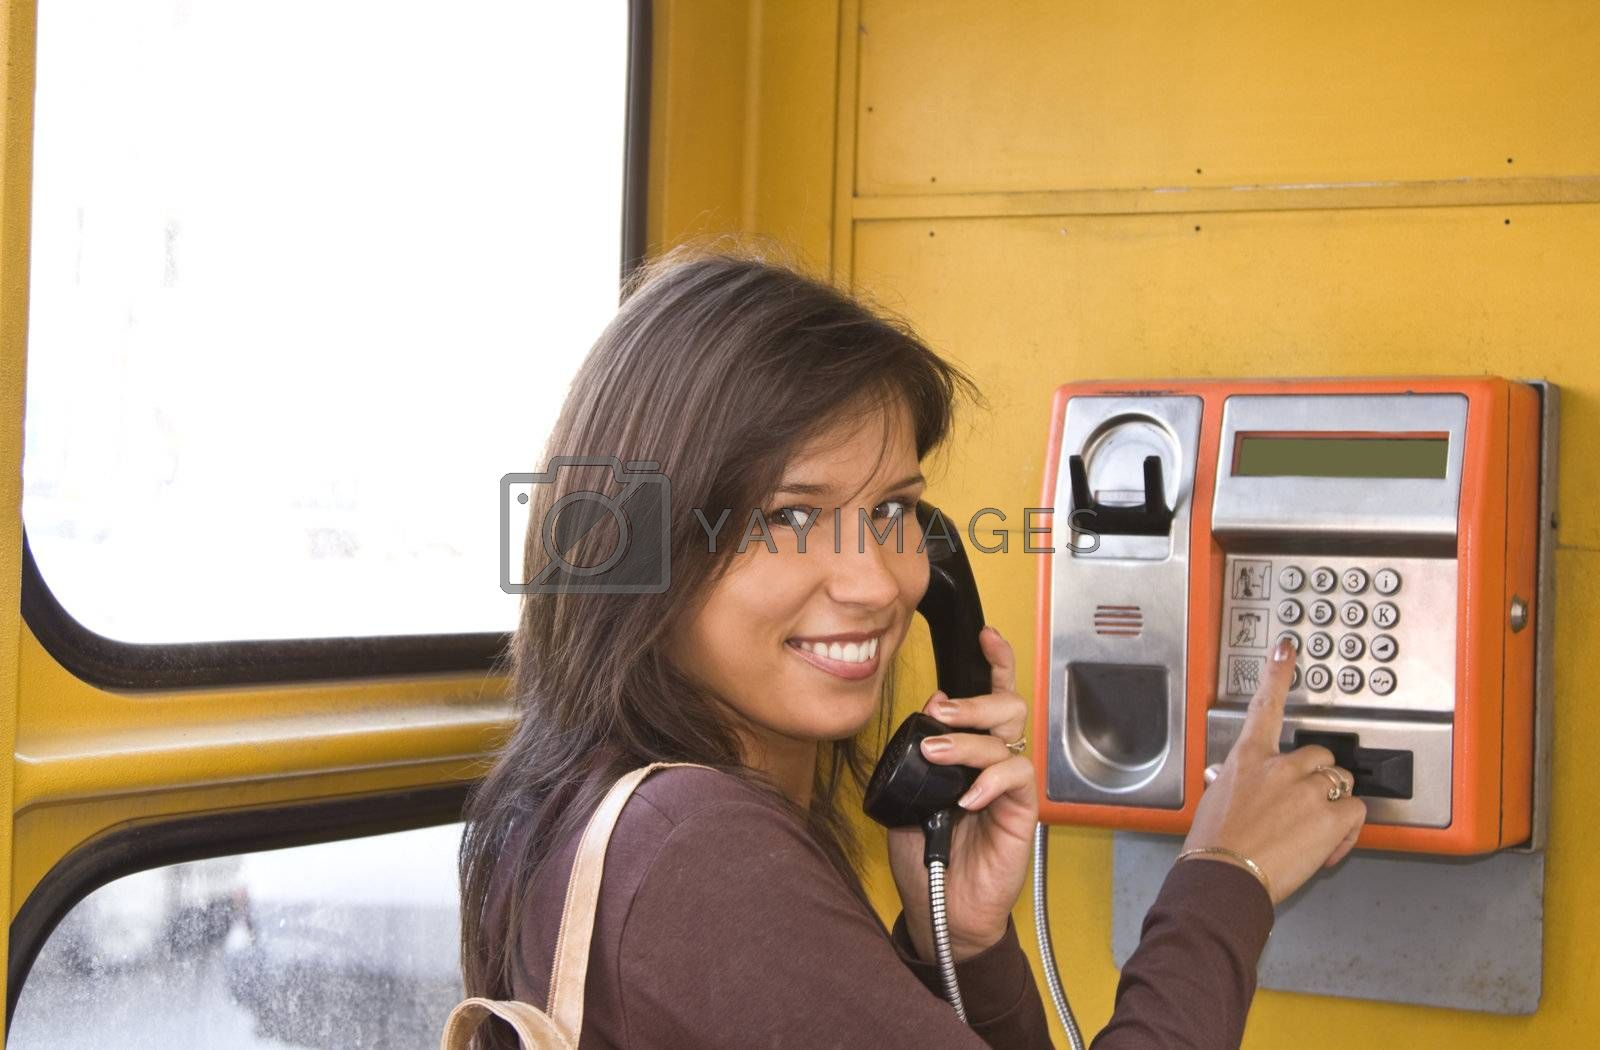 Image of a beautiful young smiling woman in a public phone cabin.